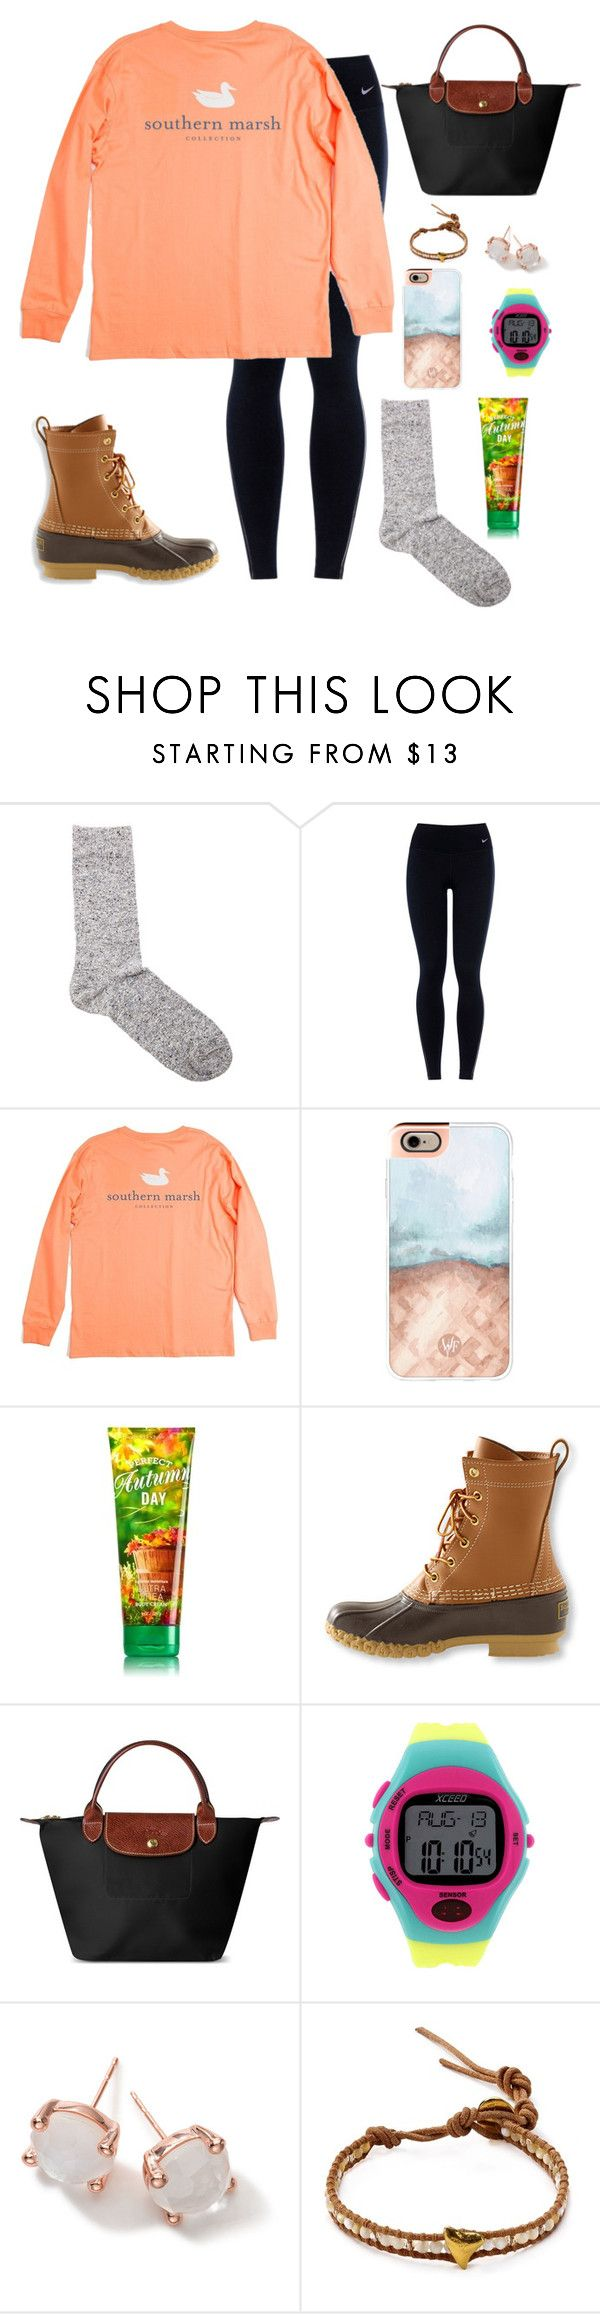 """600?!?!?!"" by apemb ❤ liked on Polyvore featuring Étoile Isabel Marant, NIKE, Casetify, L.L.Bean, Longchamp, Ippolita and Chan Luu"